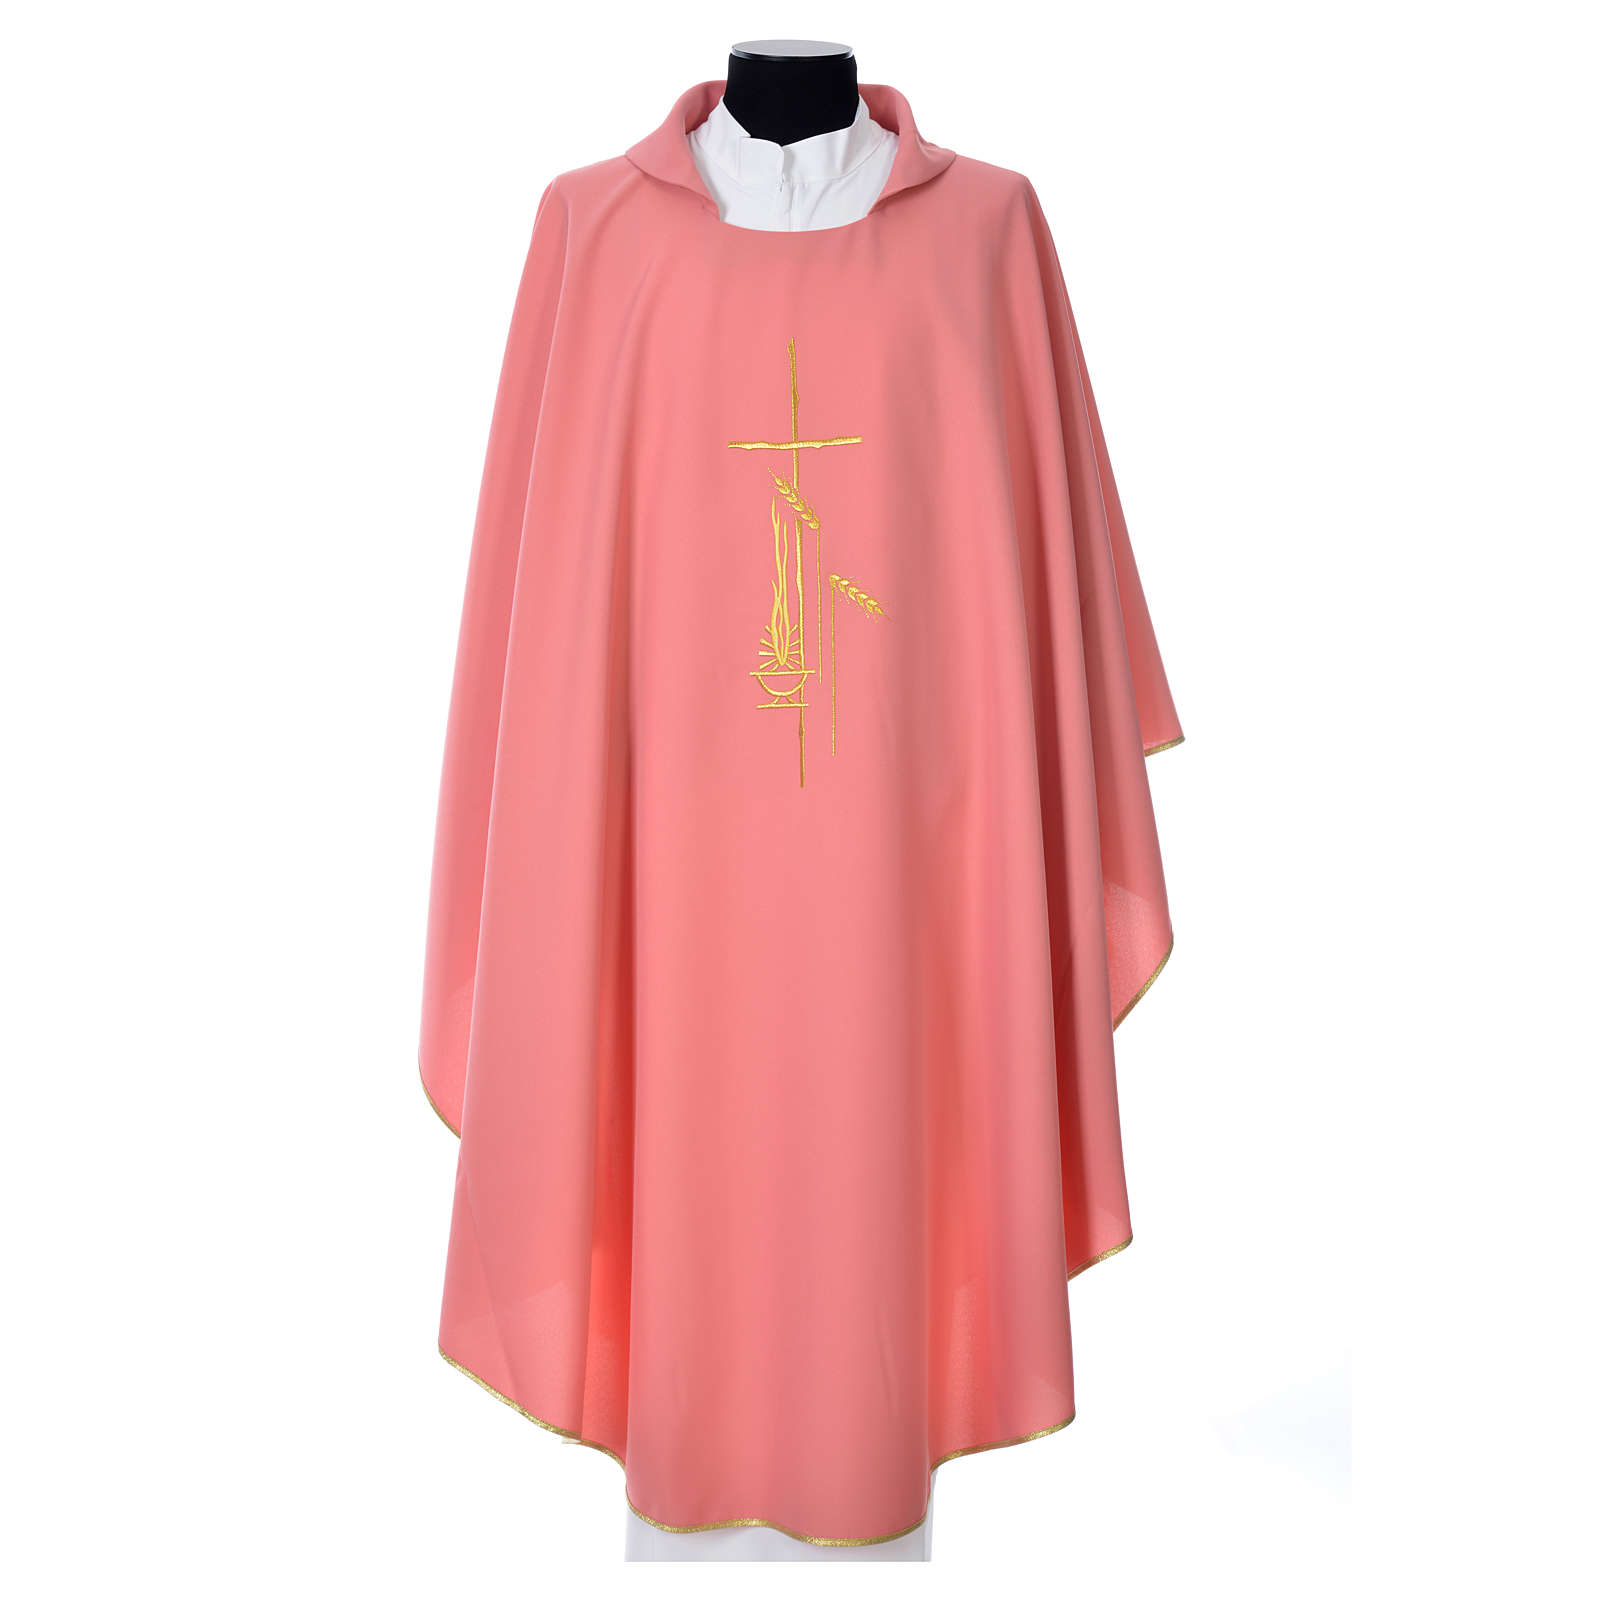 Pink Chasuble in polyester with cross, lantern and wheat symbol 4